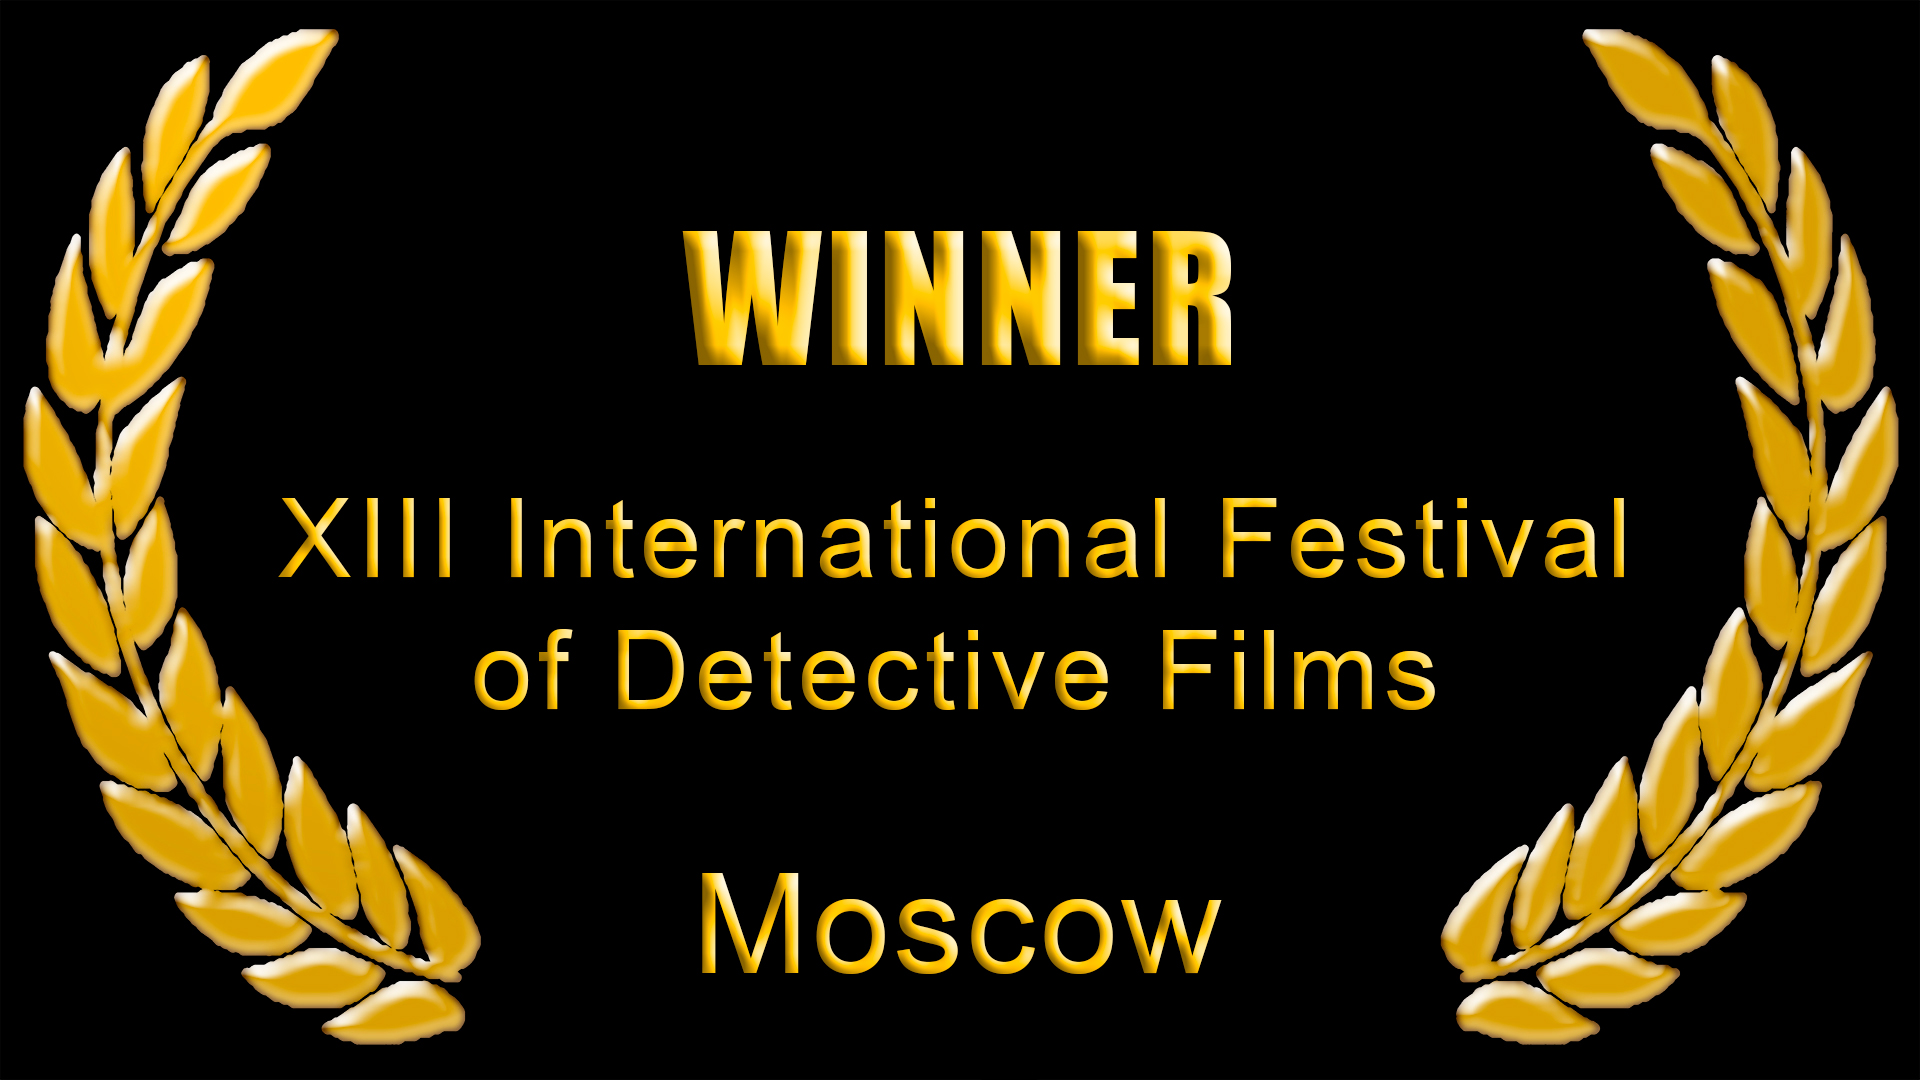 XIII International Festival of Detective Films, Moscow 2011